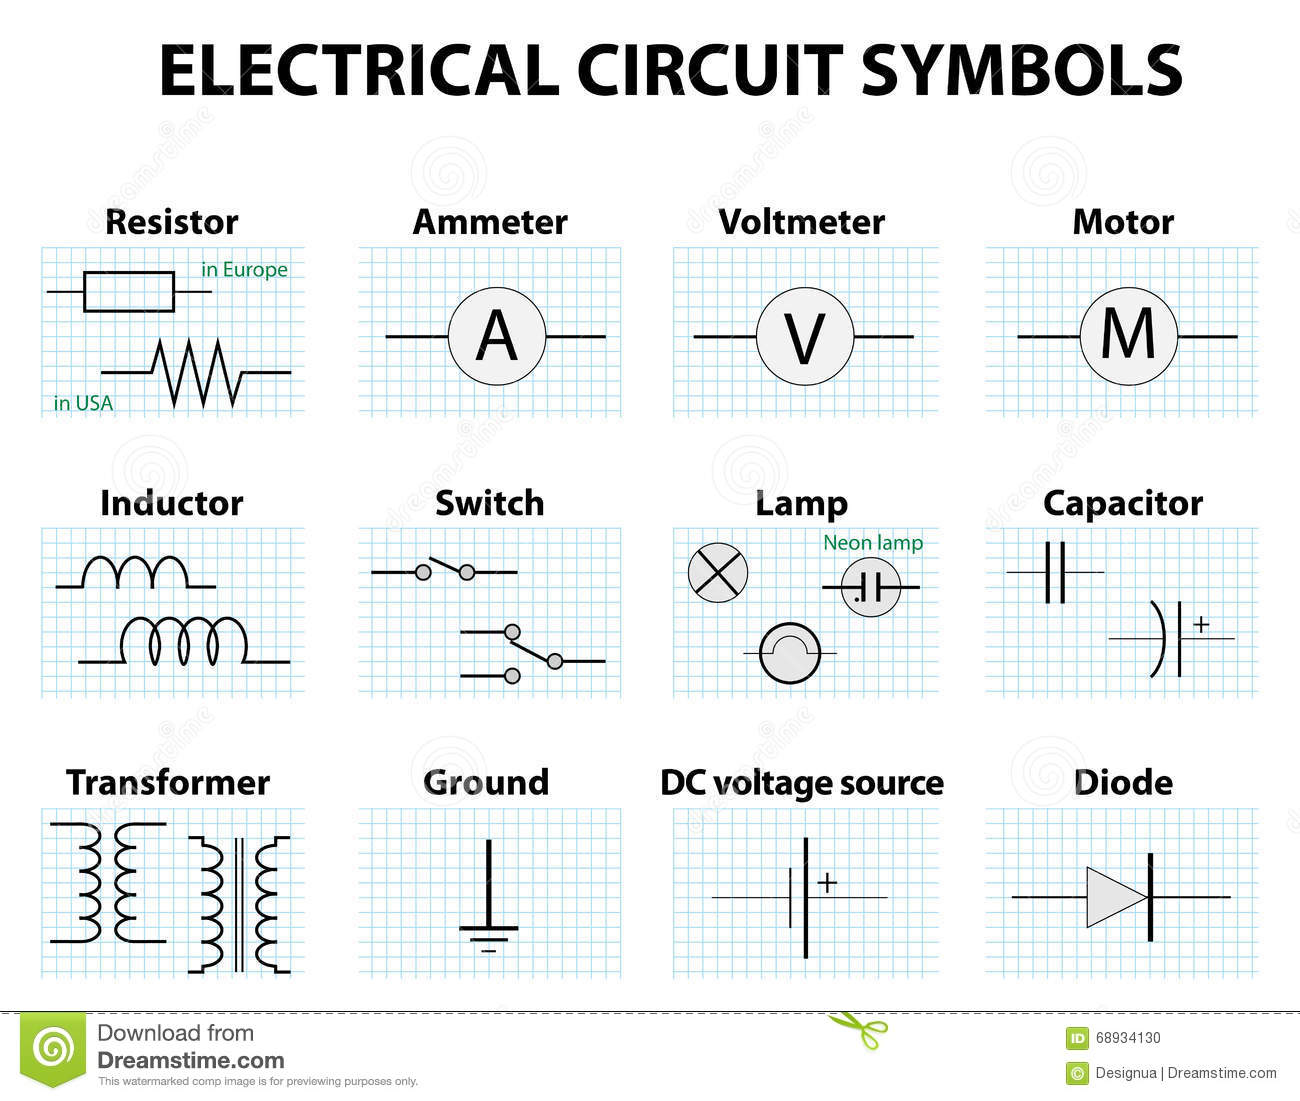 wiring diagram symbol for relay gfs dream 180 common circuit symbols stock vector illustration